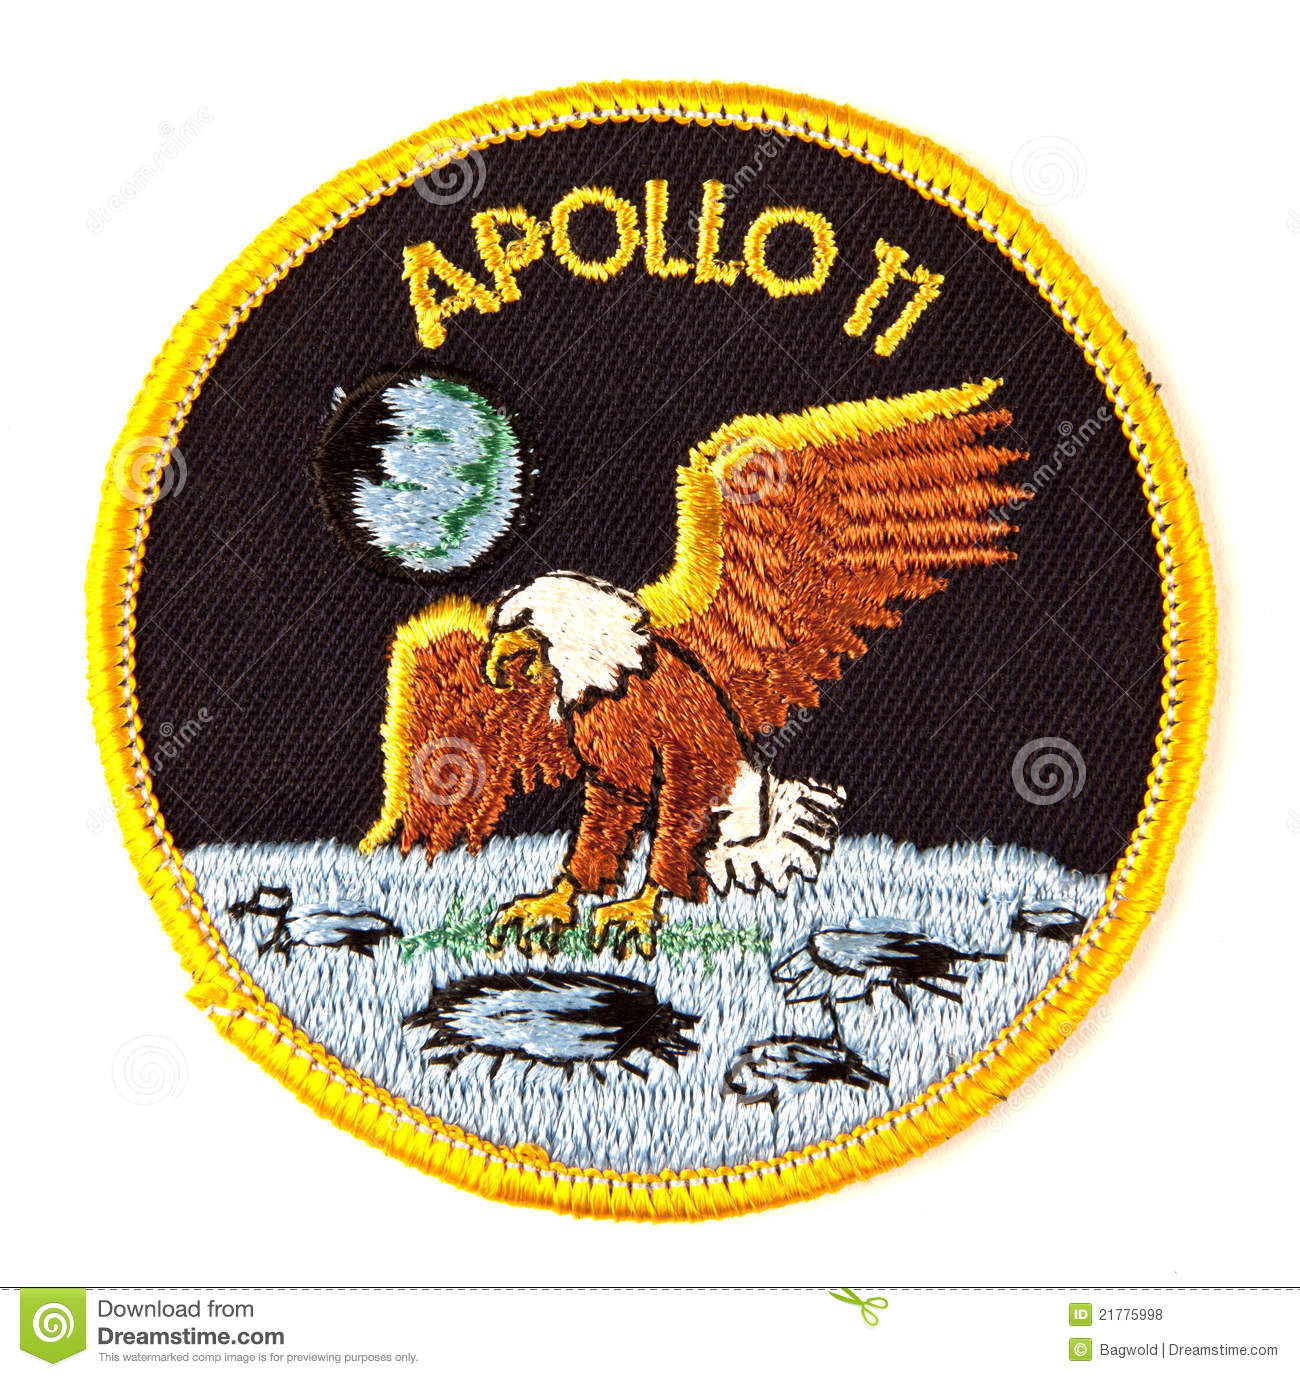 Apollo 11 Mission Space Suit Badge Royalty Free Stock Photos.